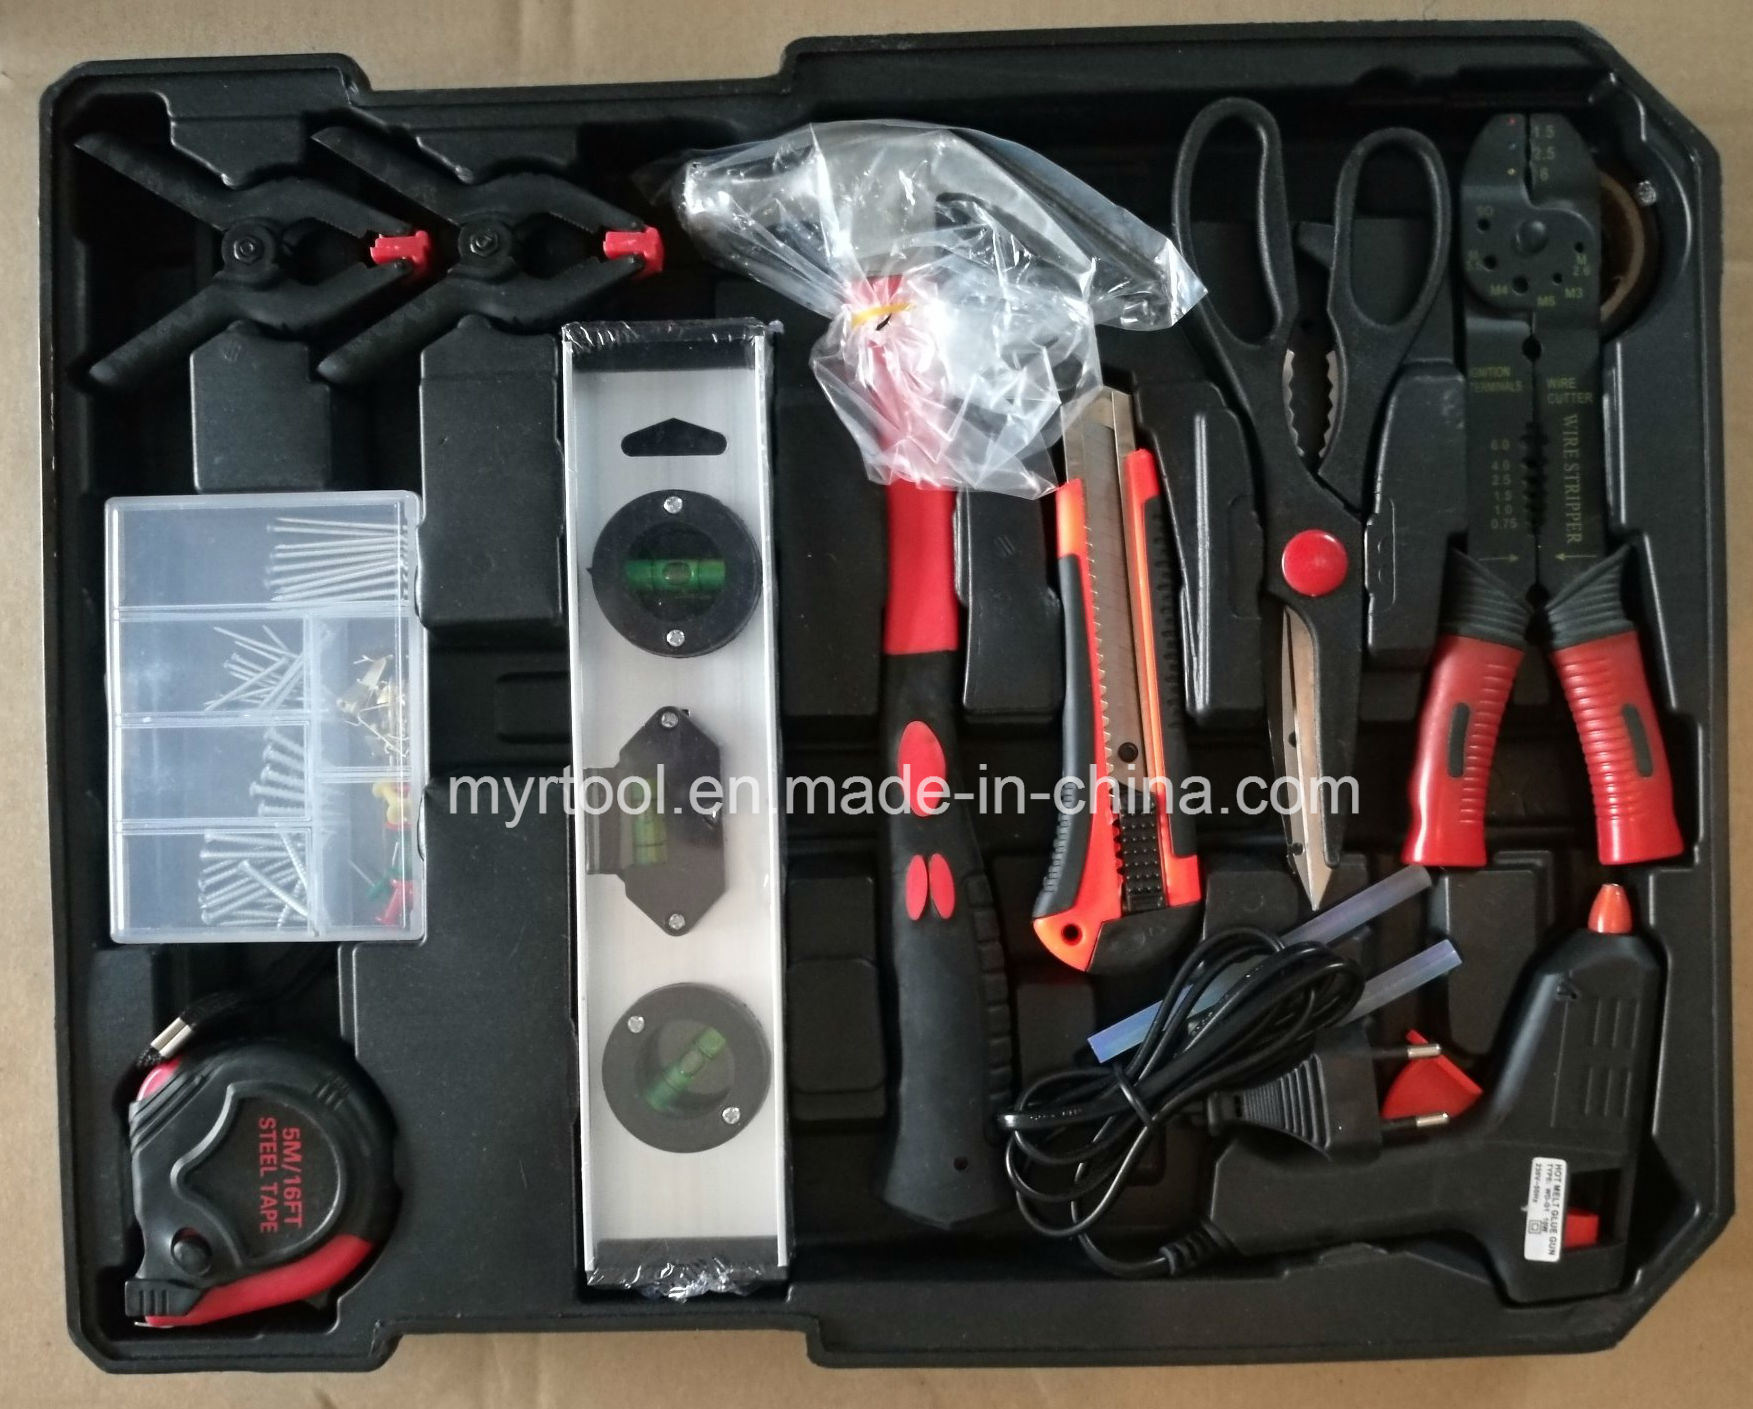 799PCS Best Sellings and Much Spares Household Tool Set (FY799A)